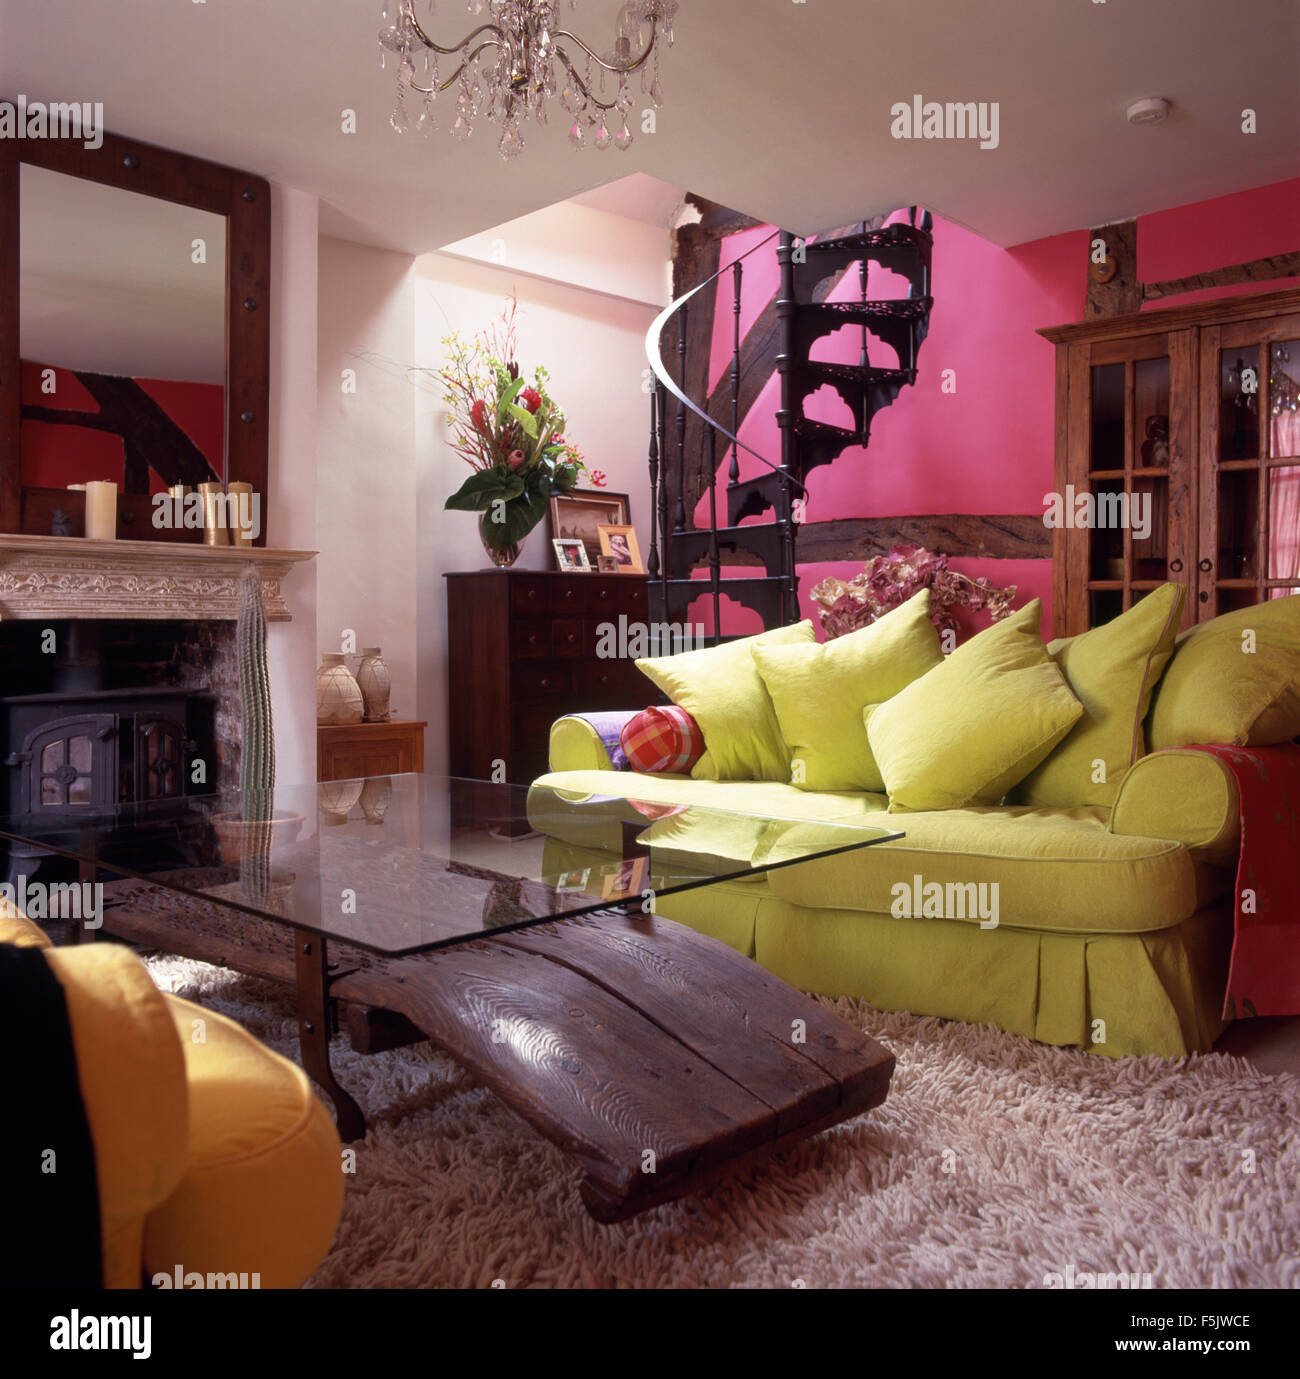 Pink Cushions Sofa Room Stock Photos Amp Pink Cushions Sofa